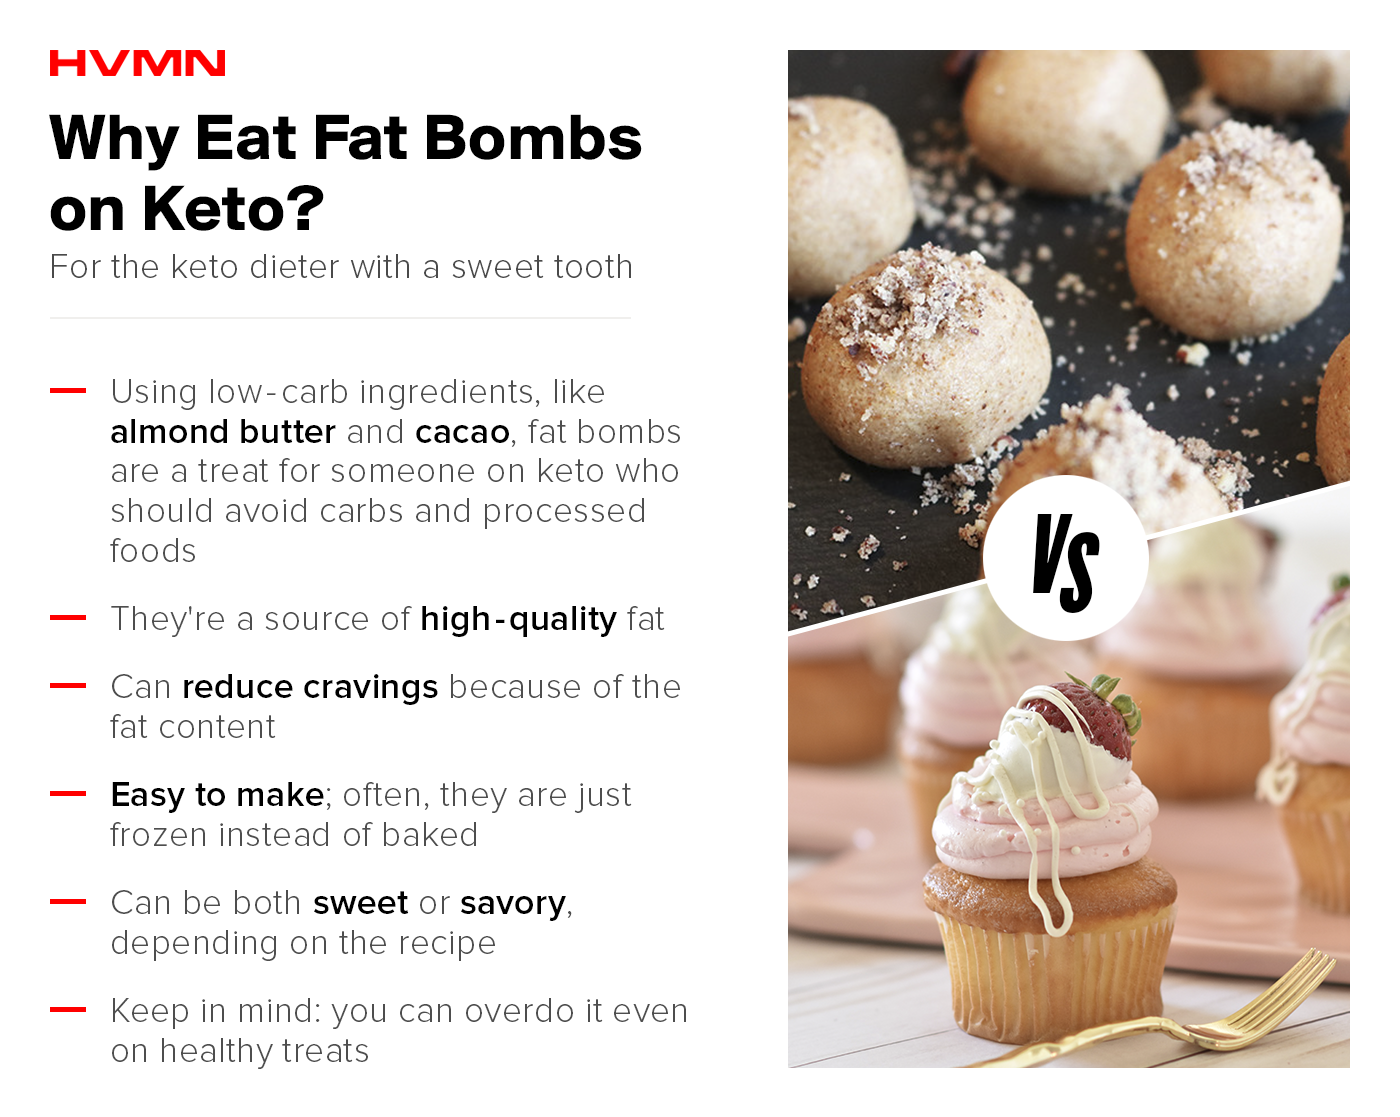 An image of fat bomb balls compared to cupcakes, showing the benefits of eating fat bombs on keto